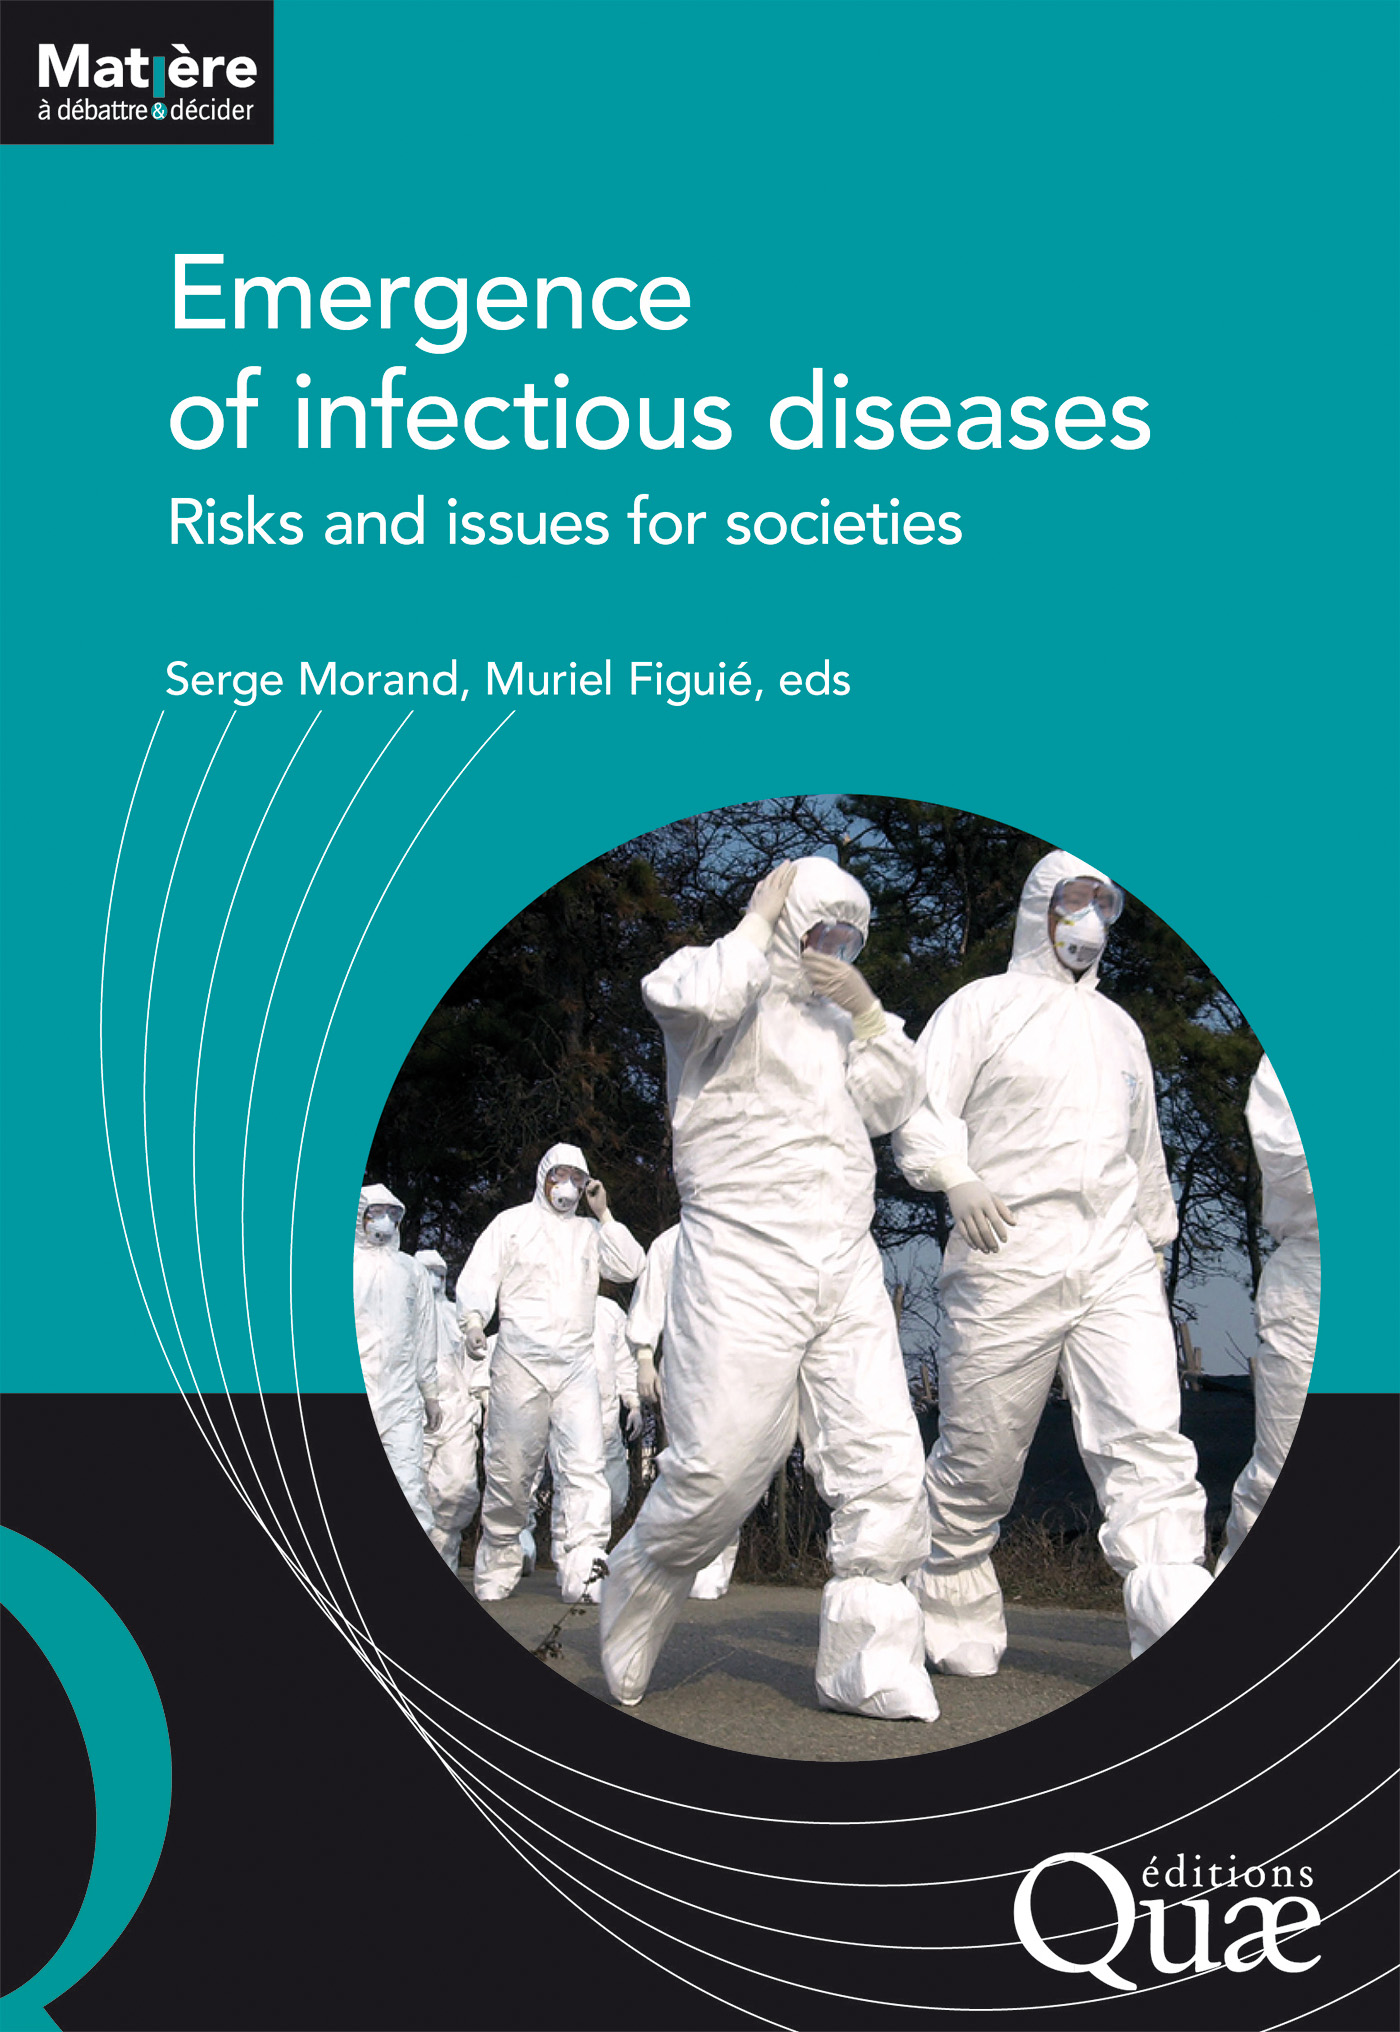 Emergence of infectious diseases De Serge Morand et Muriel Figuié - Quæ